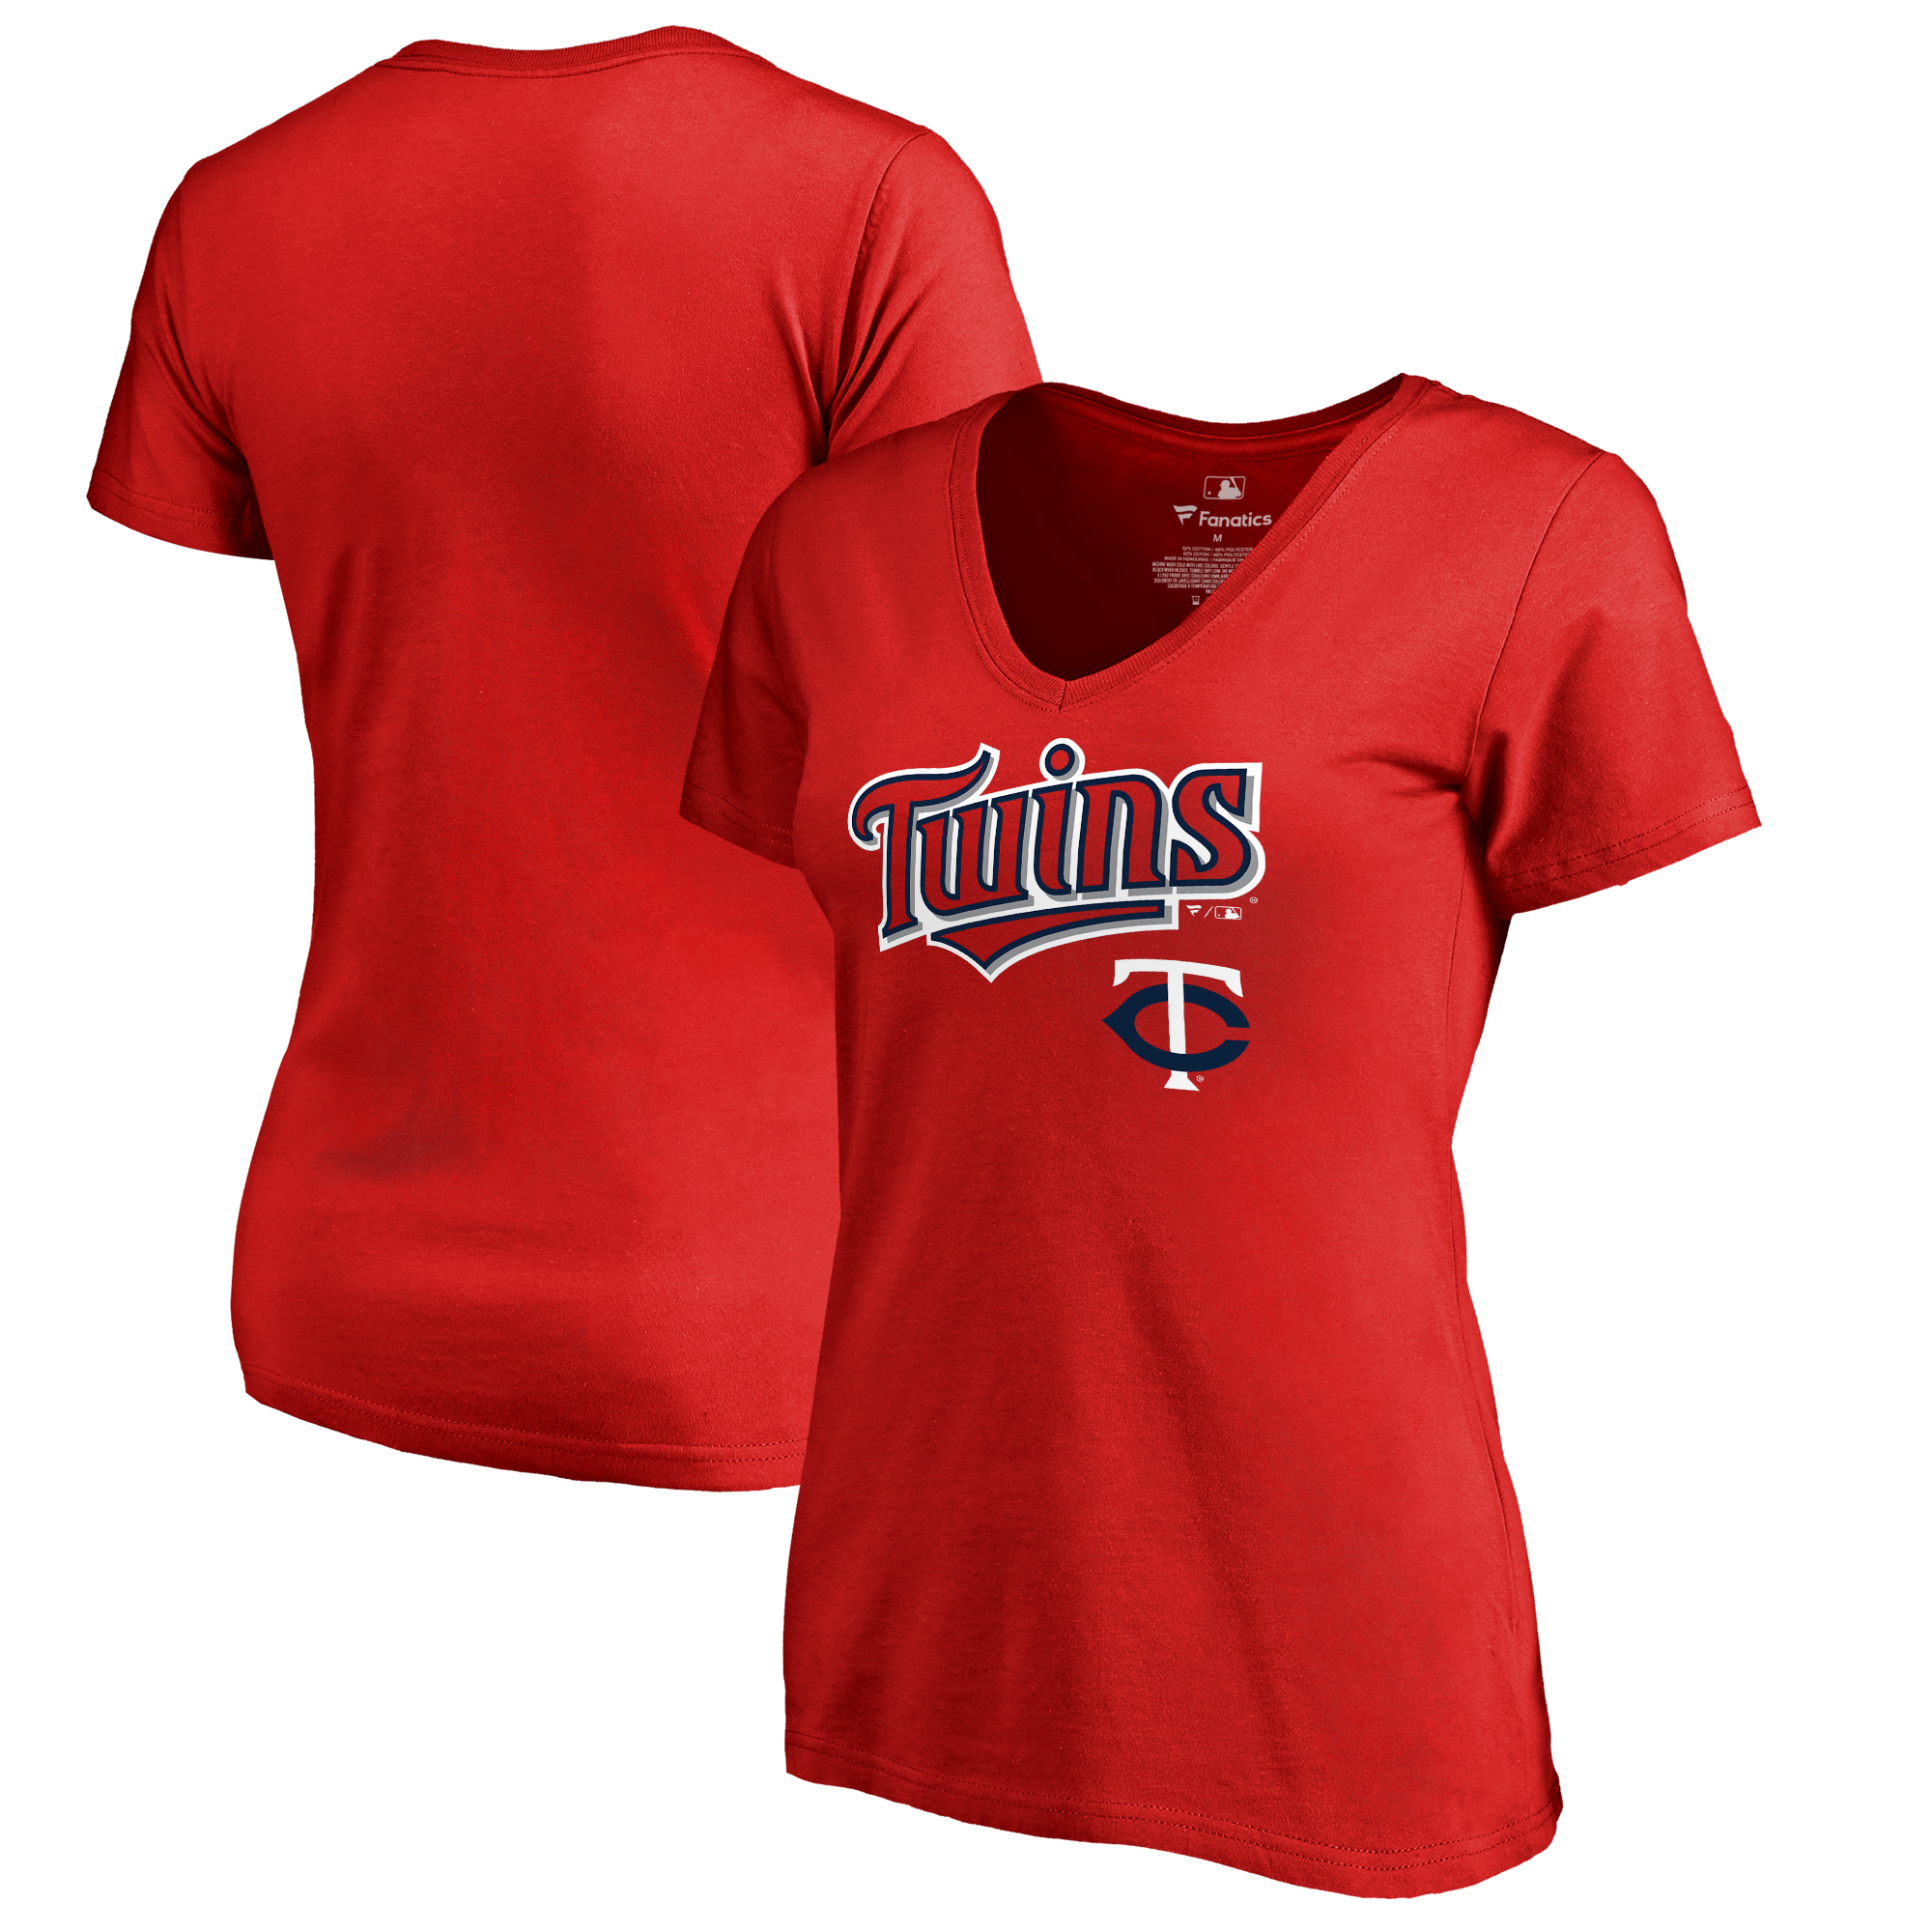 Minnesota Twins Fanatics Branded Women's Plus Sizes Team Lockup T-Shirt - Red